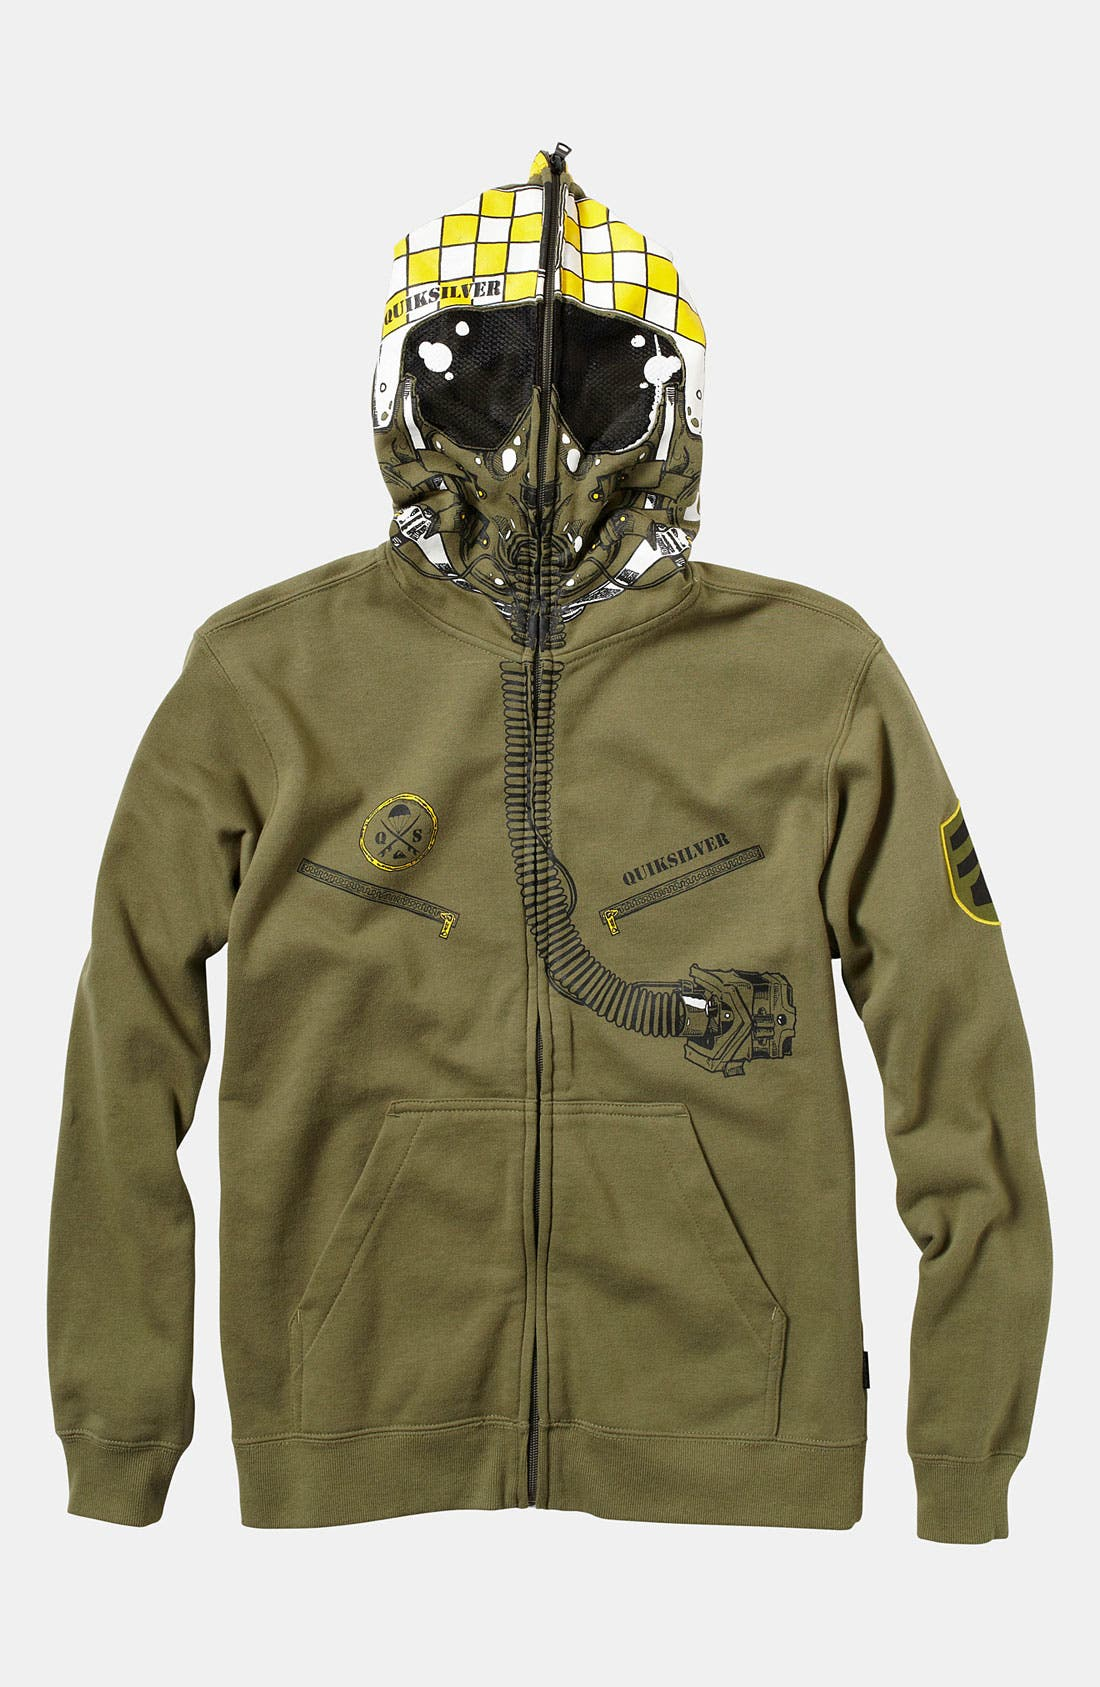 Alternate Image 1 Selected - Quiksilver 'Masquerade' Mask Hoodie (Big Boys)